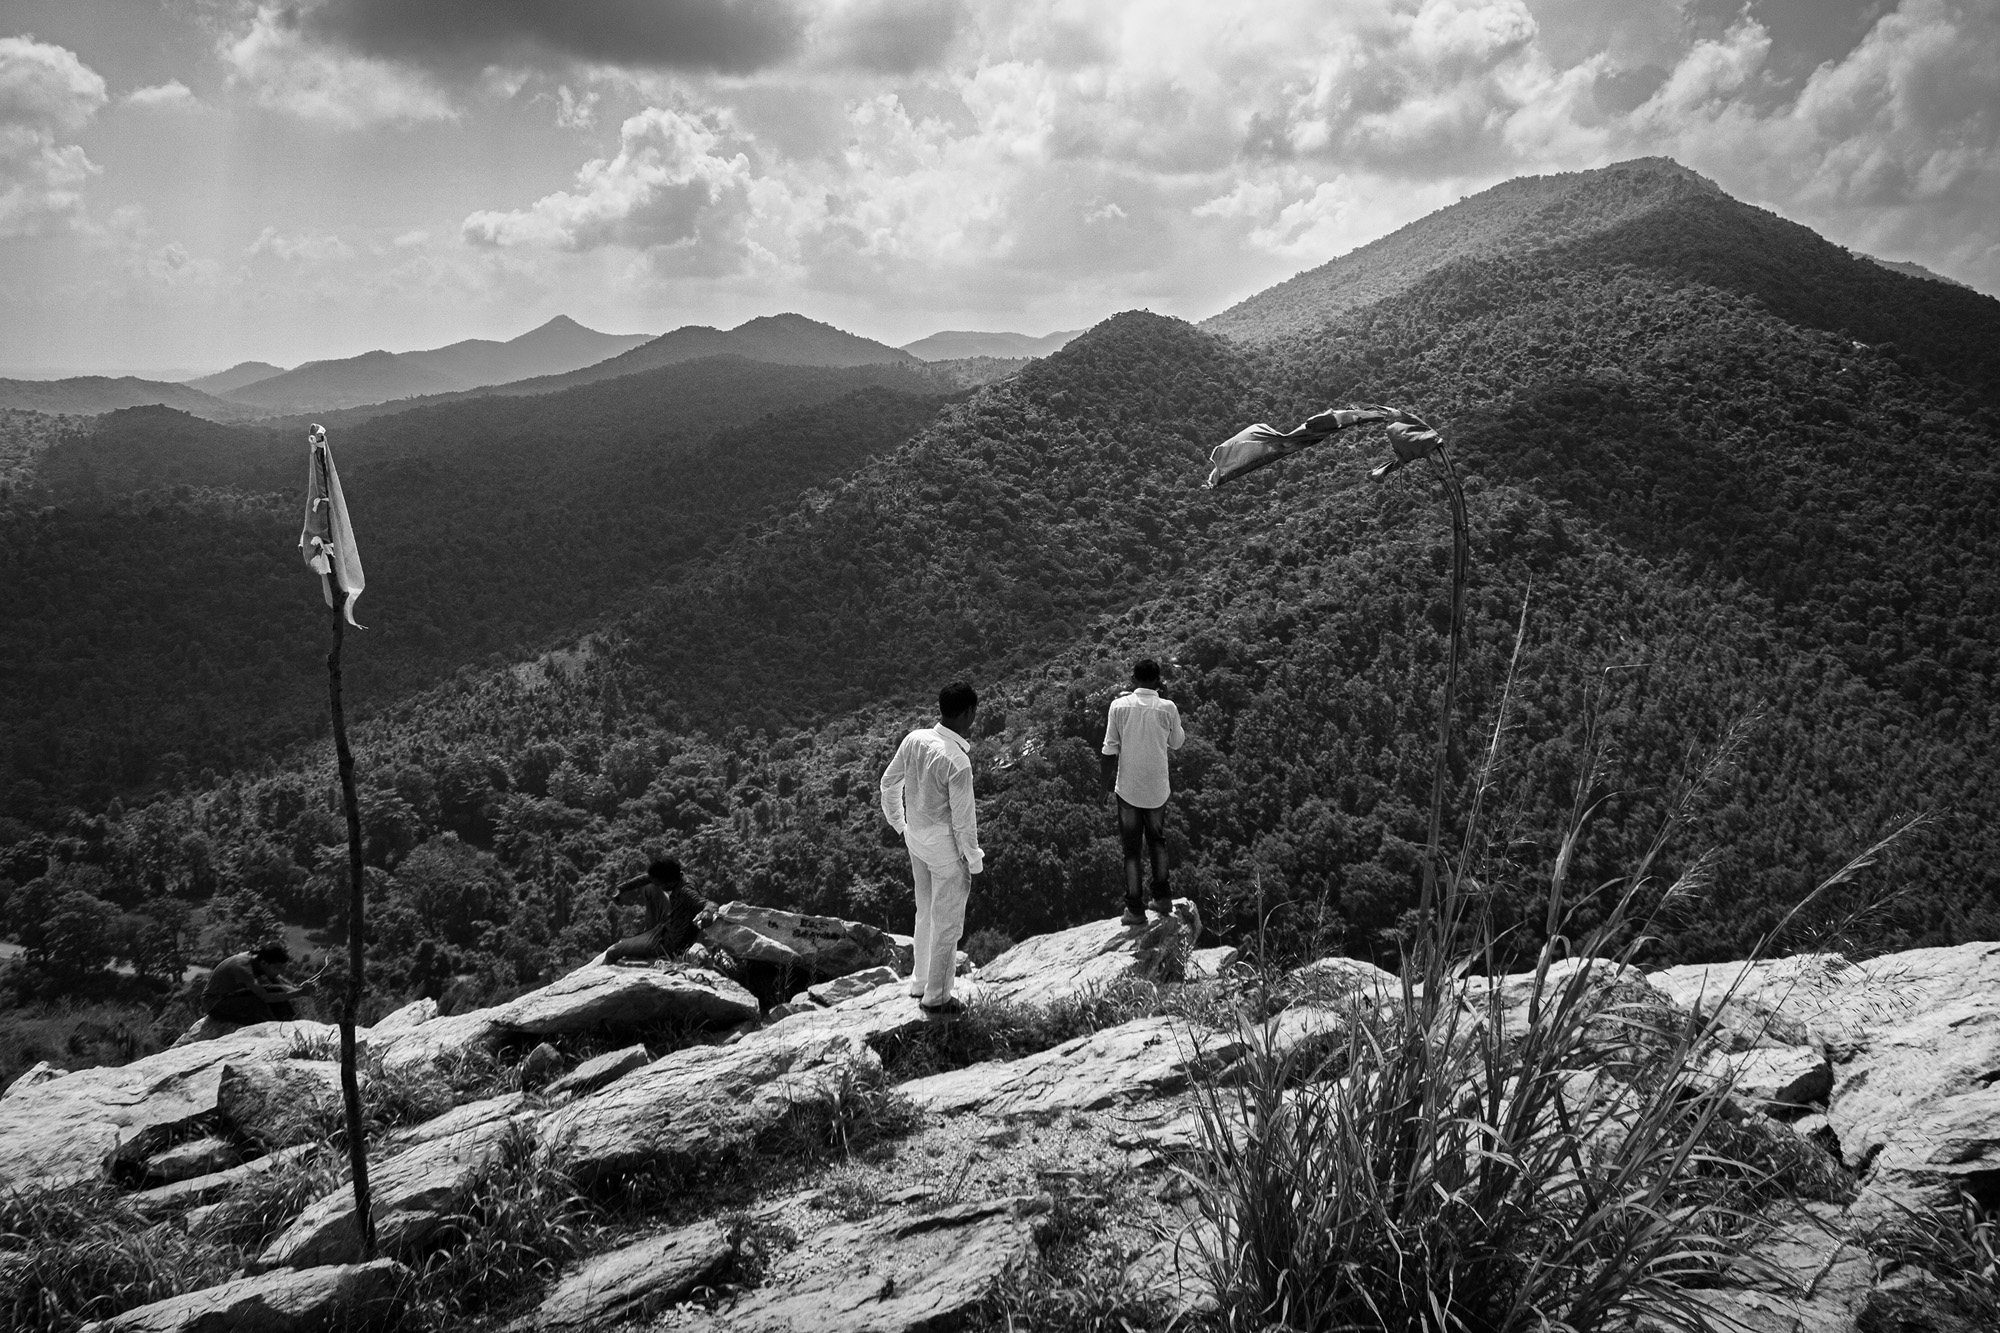 The hills of Jadugoda have been mined for uranium since 1967. Villagers argue that instead of developing lives, the oldest uranium mining region has witnessed extensive health and environmental damage. Photo by Subhrajit Sen.